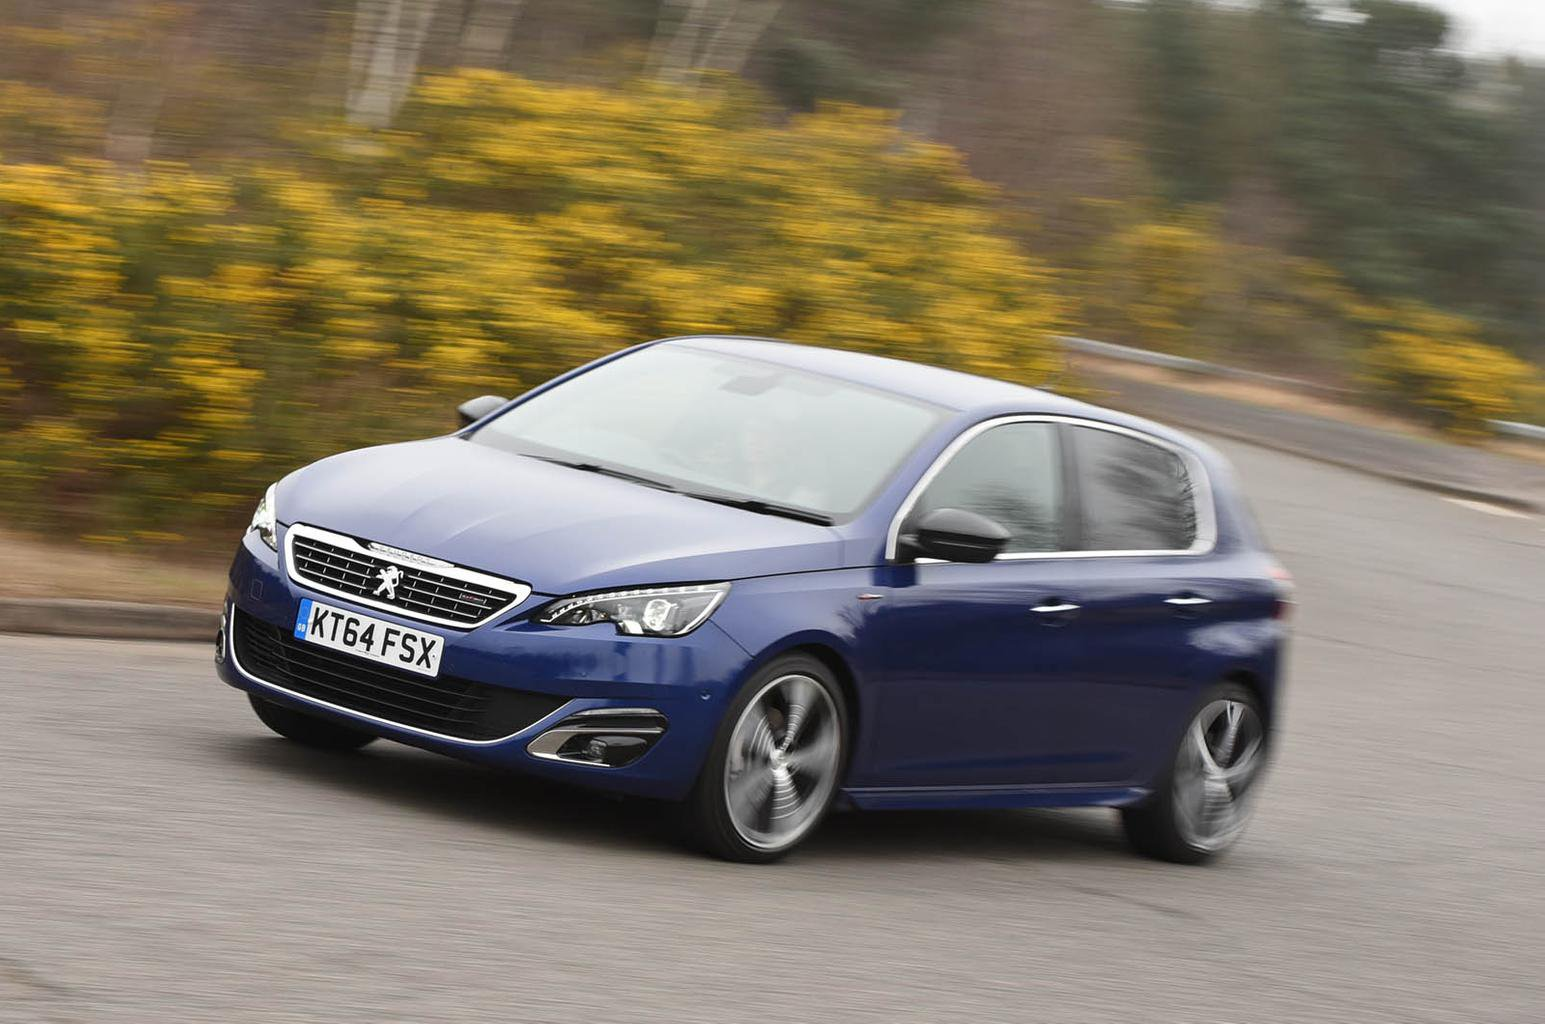 2015 peugeot 308 gt line review what car